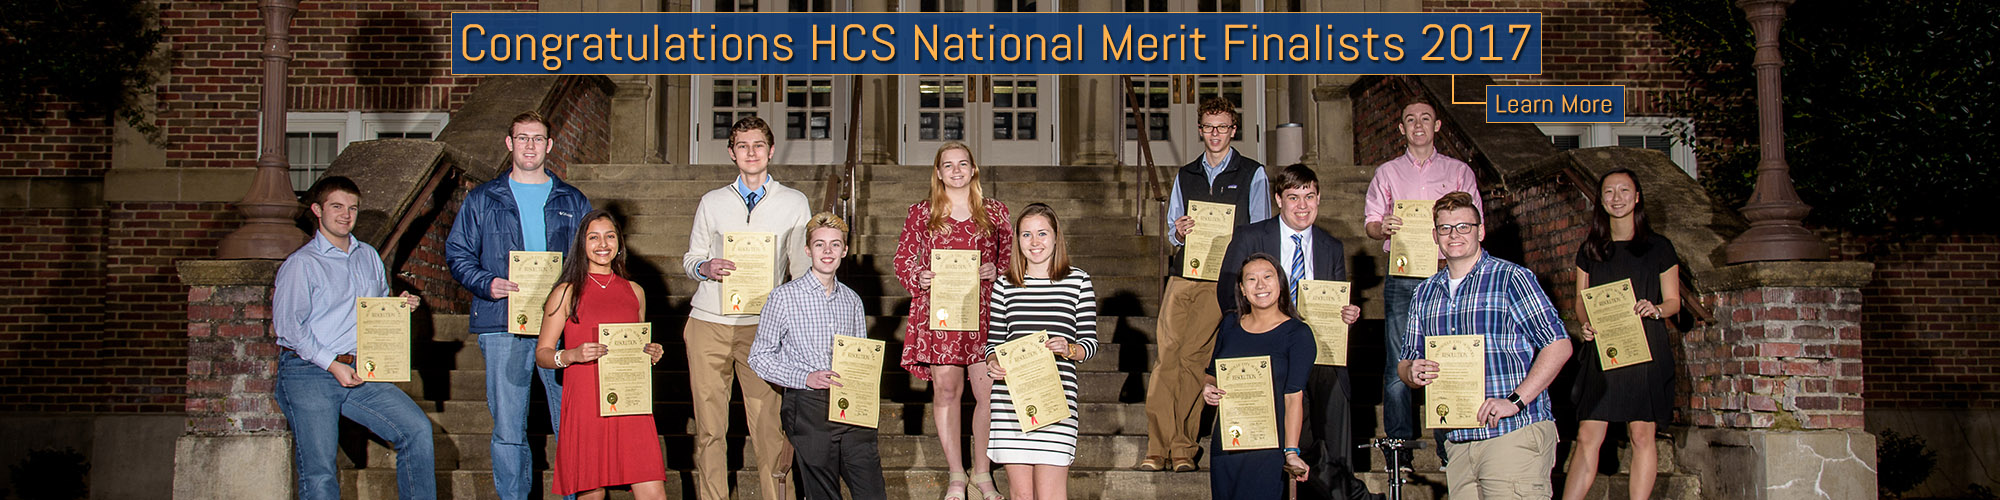 National Merit Scholars Finalists Banner